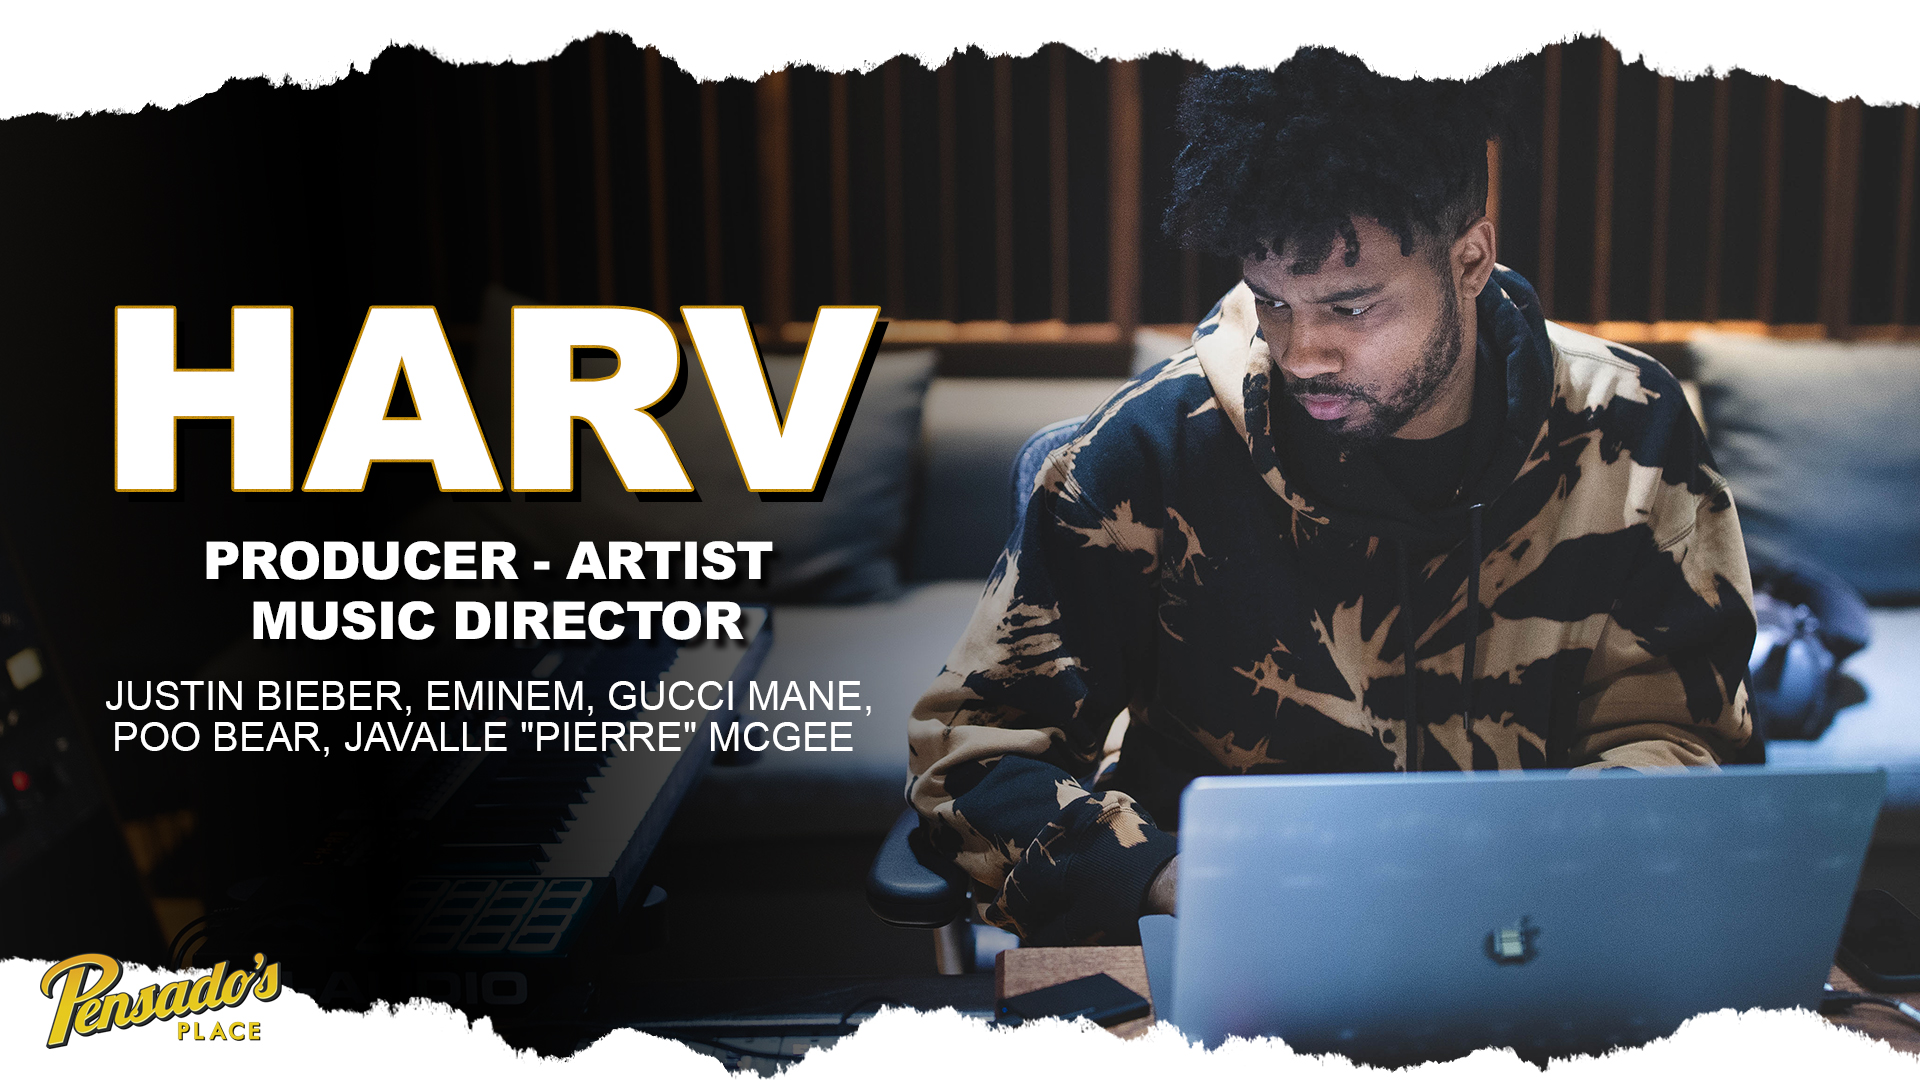 Justin Bieber Producer / Music Director / Artist, HARV